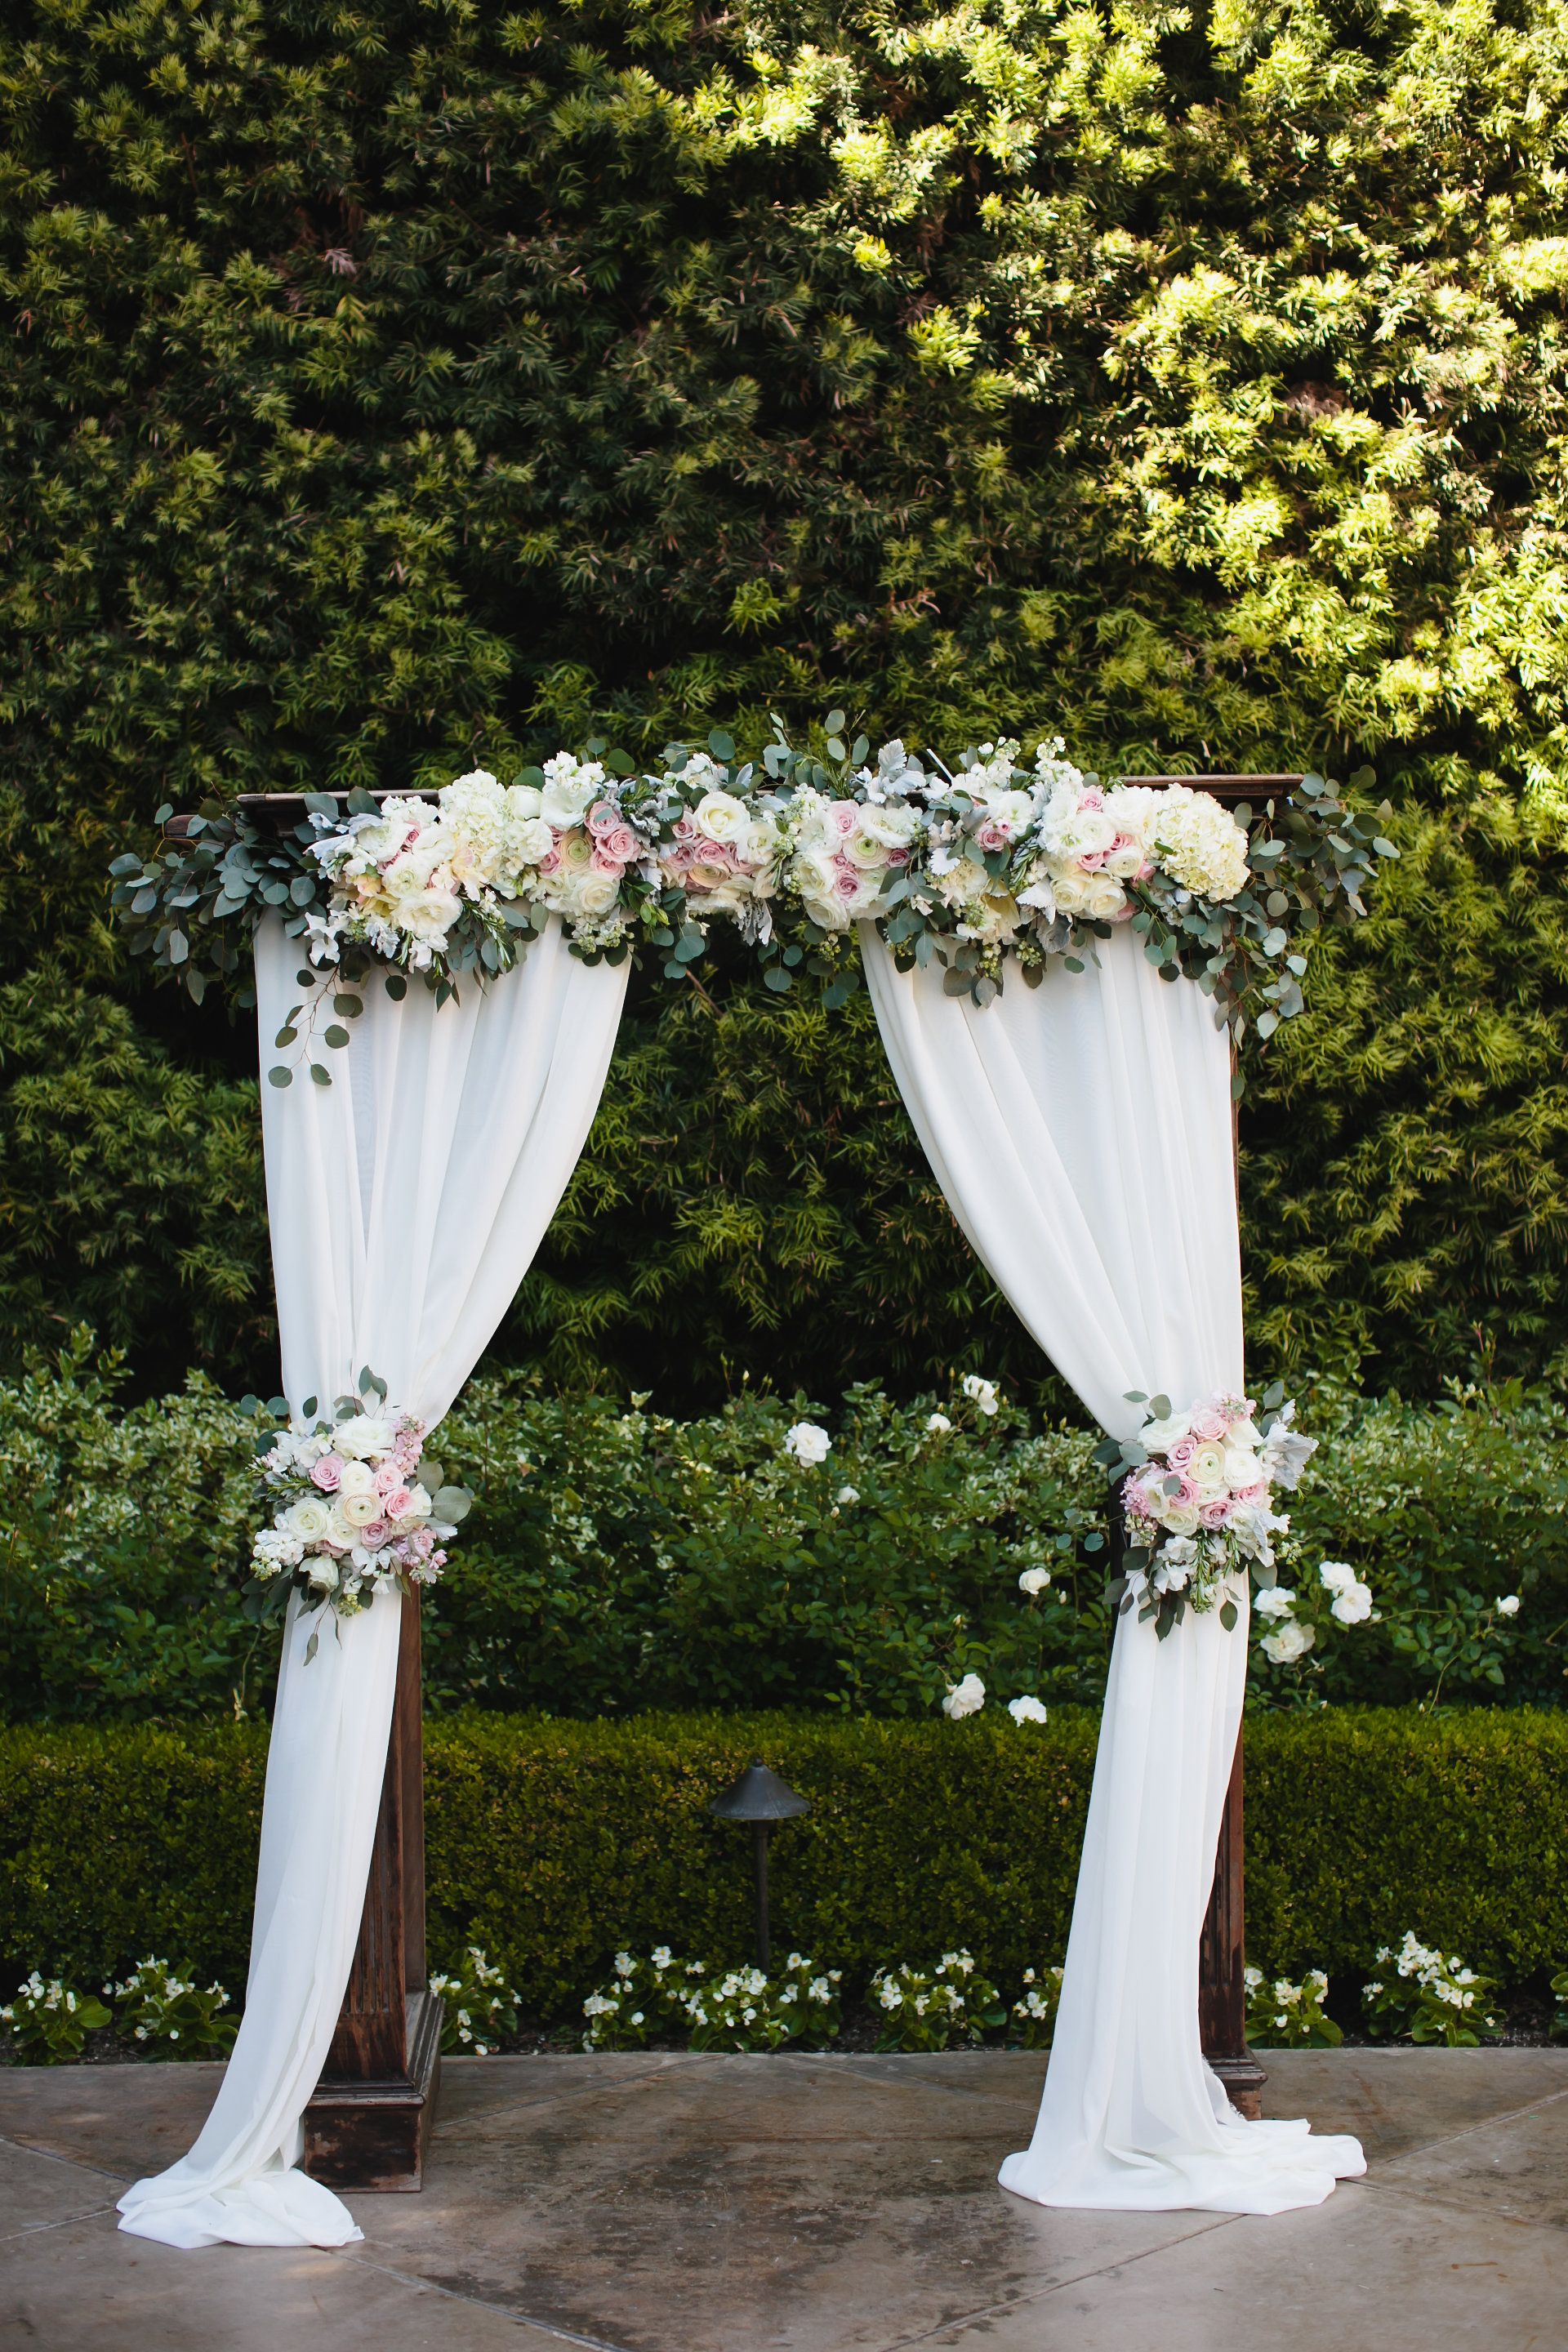 Blush And White Wedding Arch At Franciscan Gardens Draping Fabric Curtains With Roses